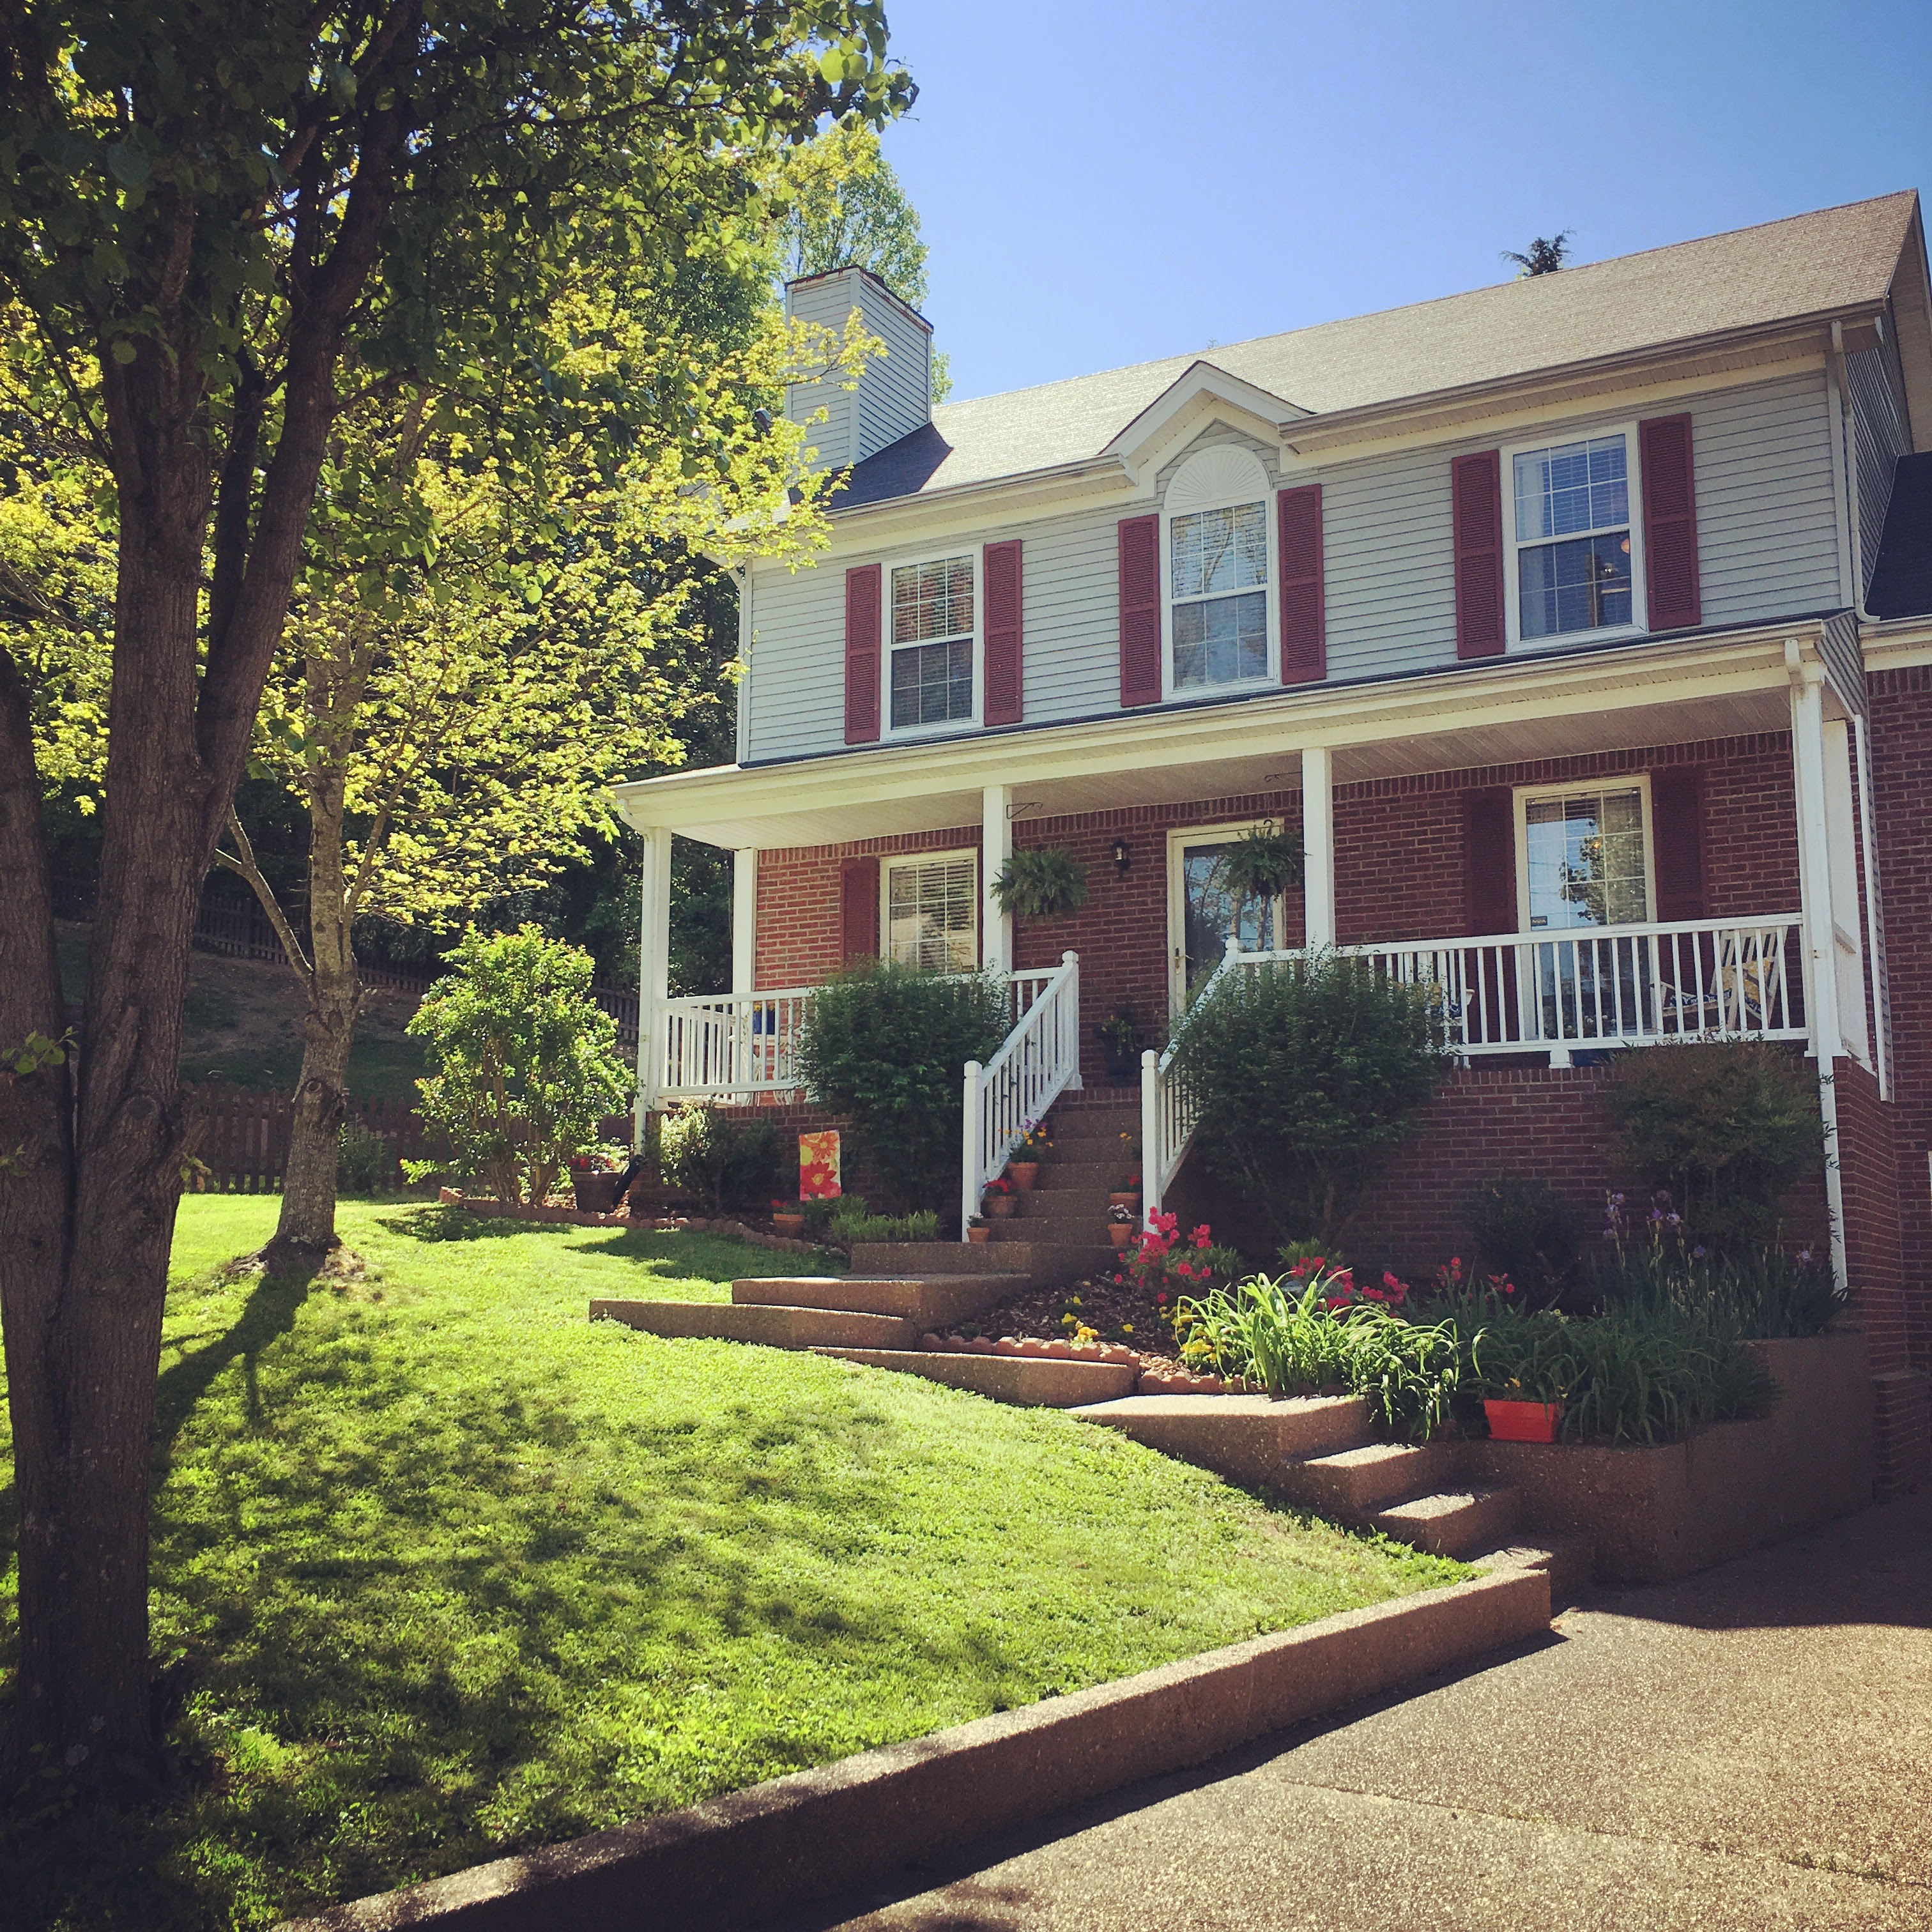 curb appeal staging tips - Curb Appeal Tips